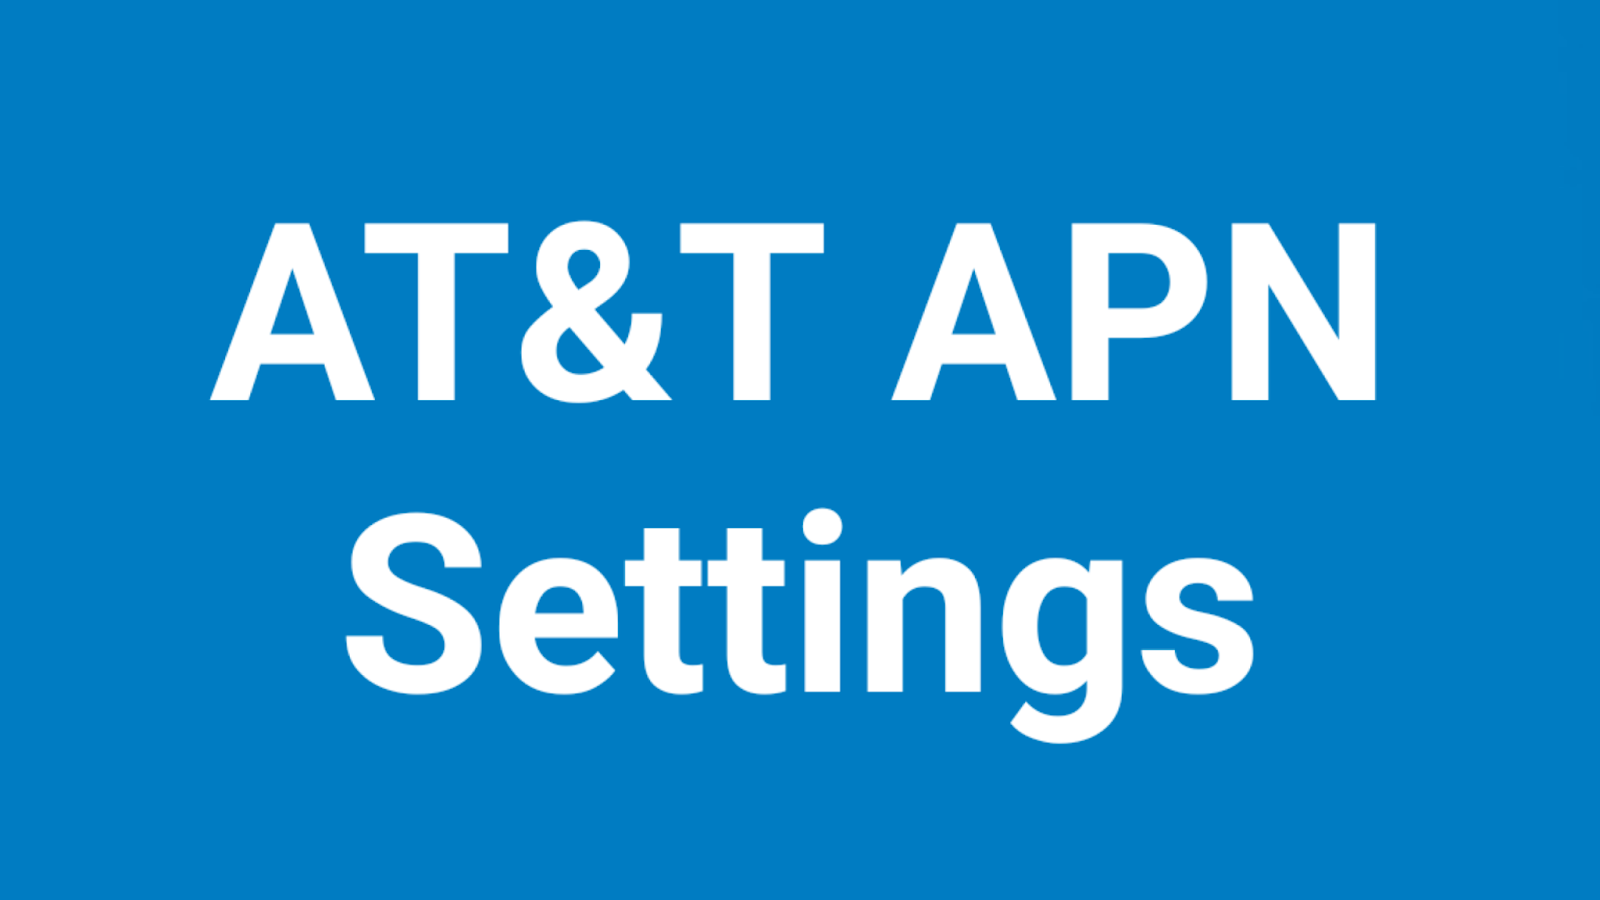 AT&T APN Settings Android, iPhone